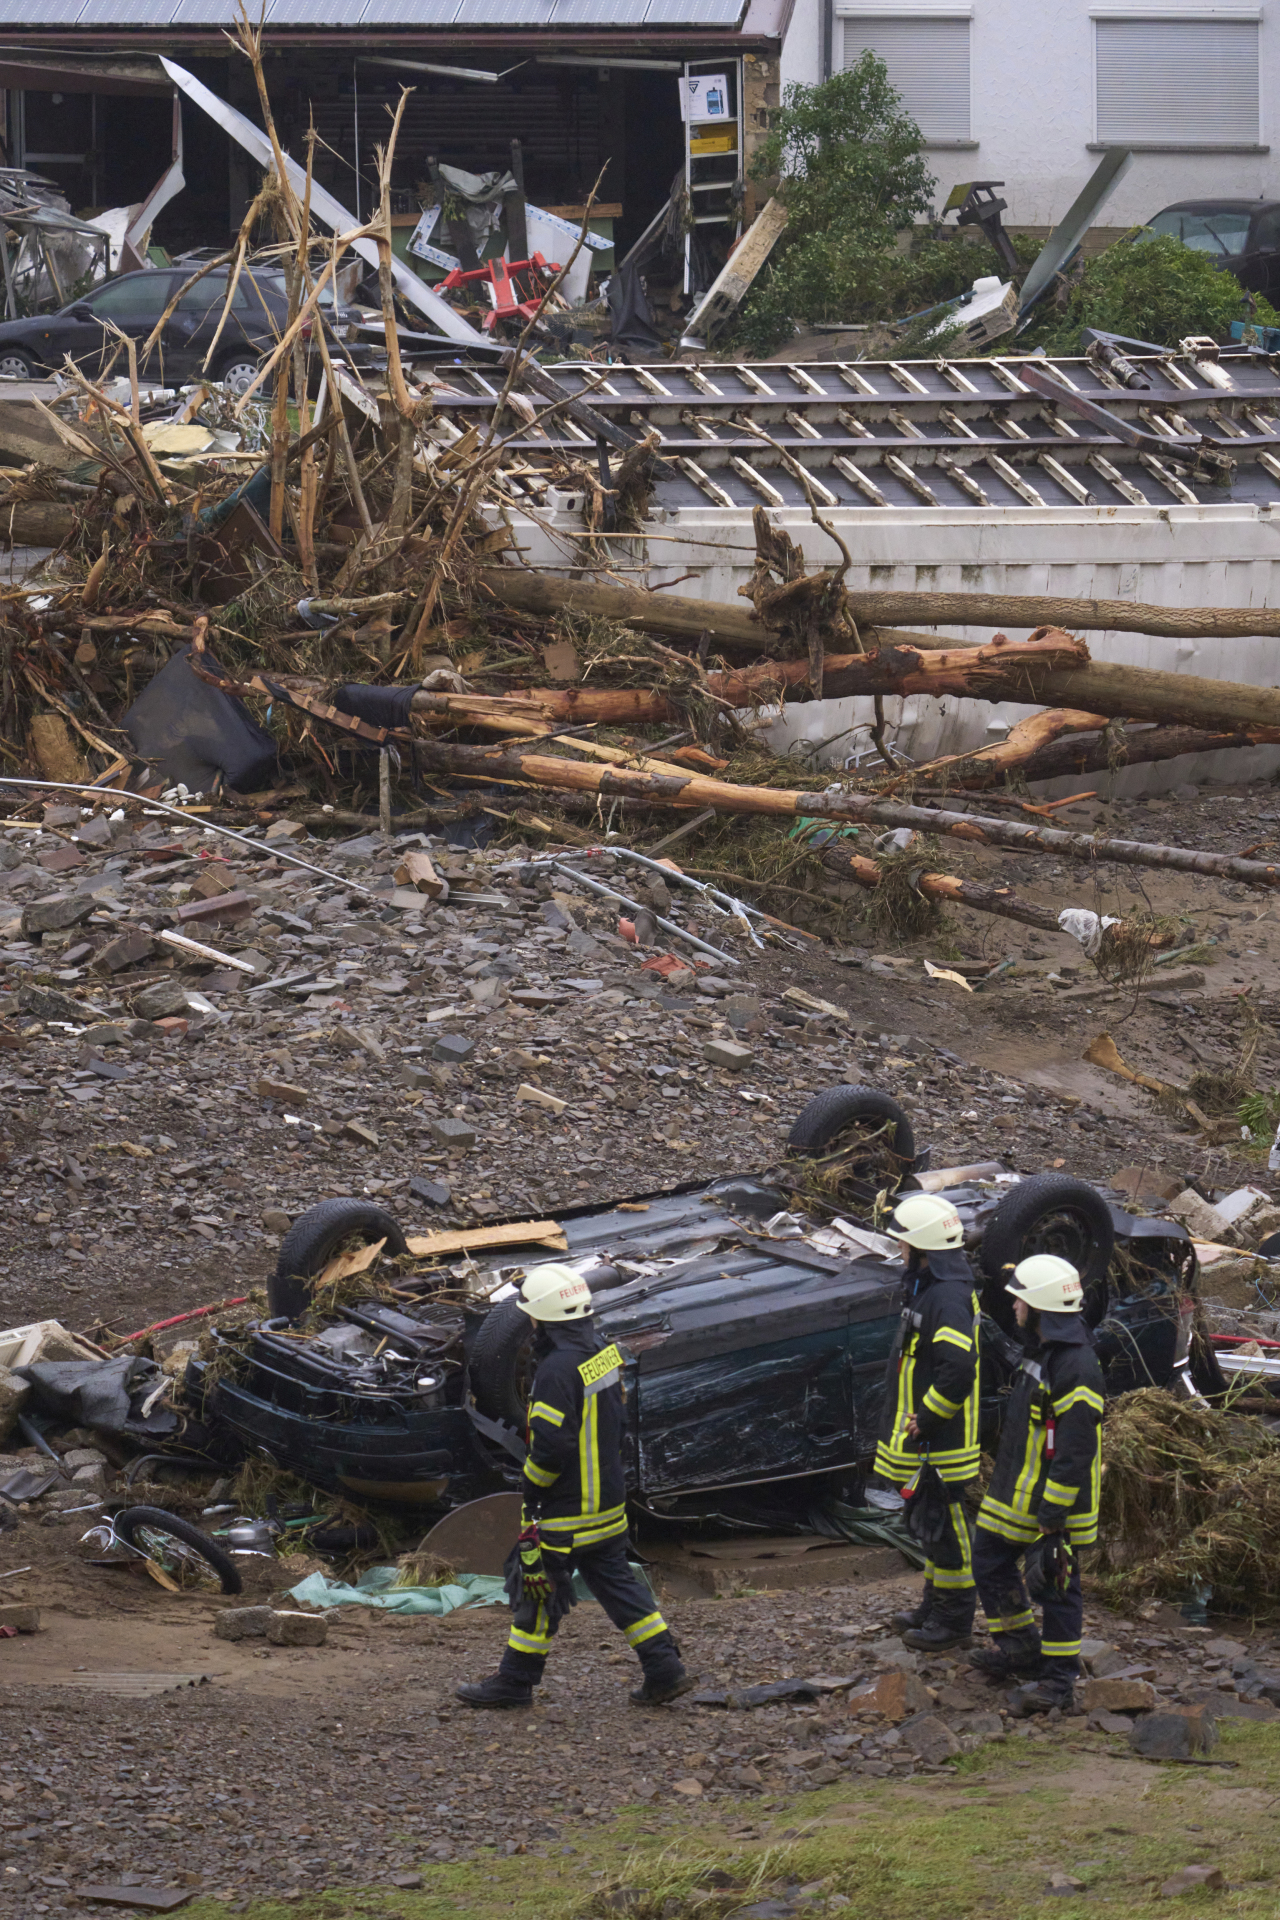 Firefighters walk past a destroyed car in the community of Schuld, Germany, Friday, July 16, 2021. Heavy rains caused mudslides and flooding in the western part of Germany. Multiple have died and dozens are missing as severe flooding in Germany and Belgium turned streams and streets into raging, debris-filled torrents that swept away cars and toppled houses. (AP)